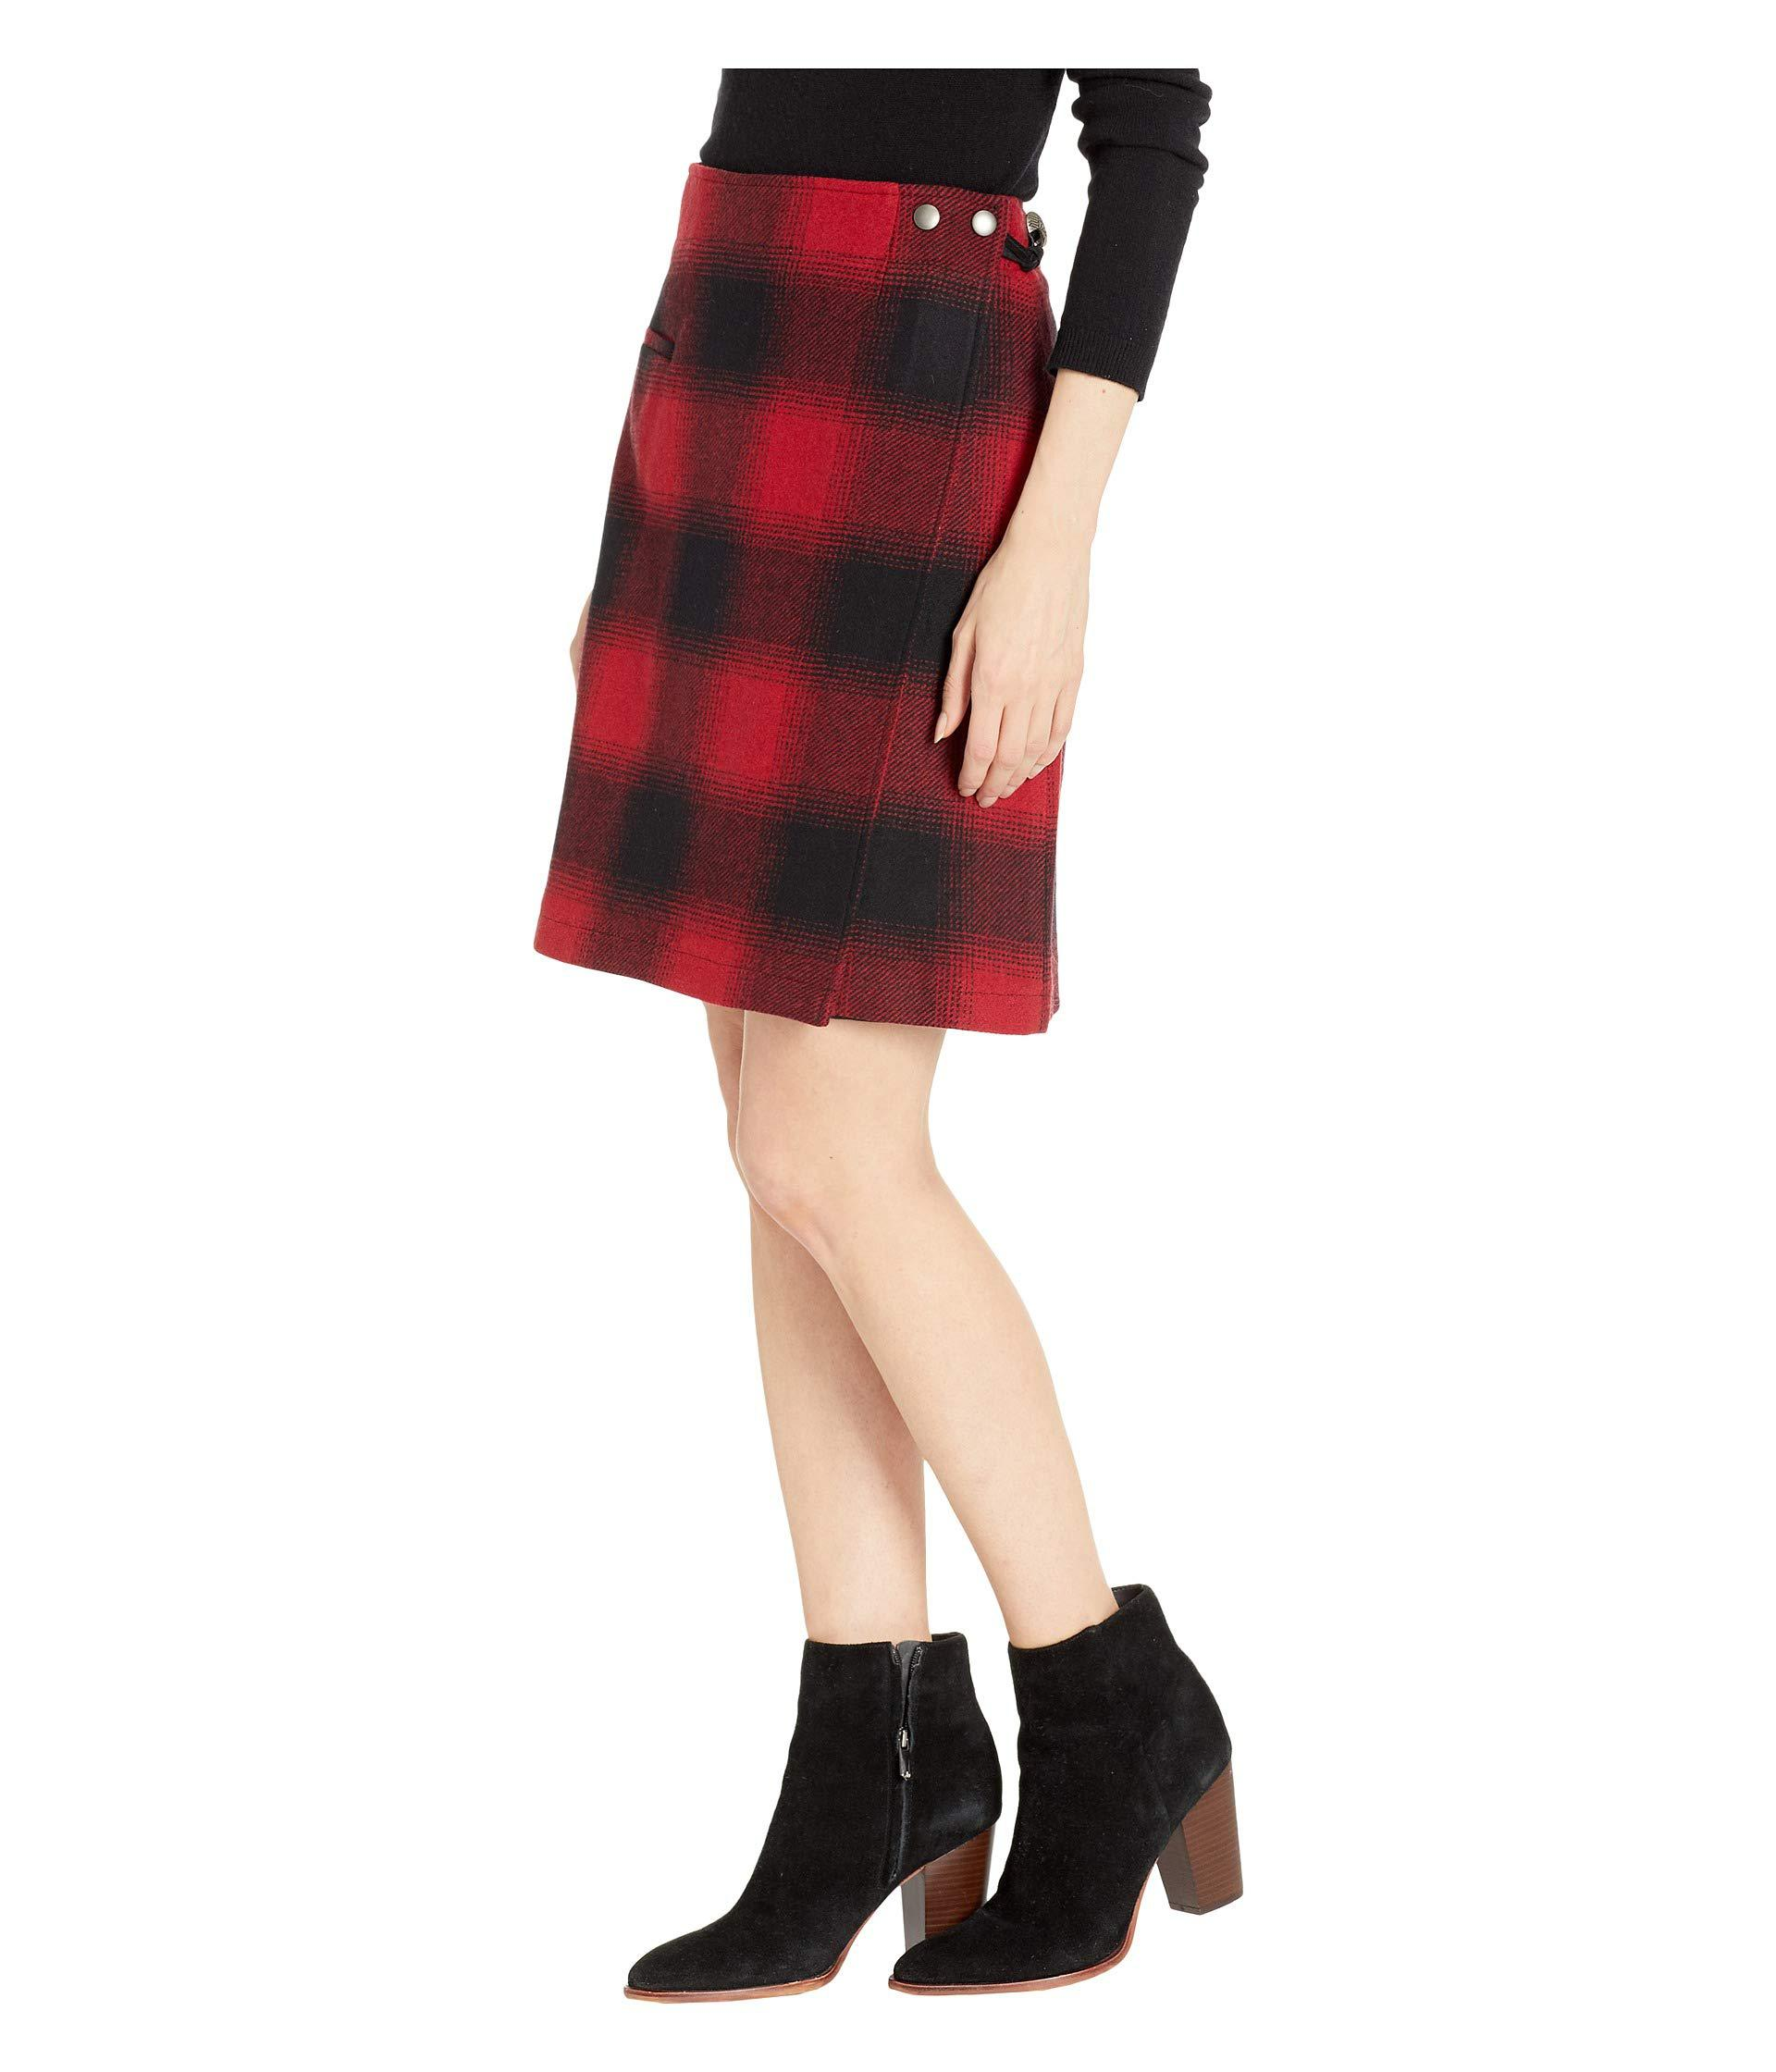 e96efcaab Lyst - Pendleton Aurora Wrap Skirt (red/black Ombre Check) Women's Skirt in  Red - Save 30%